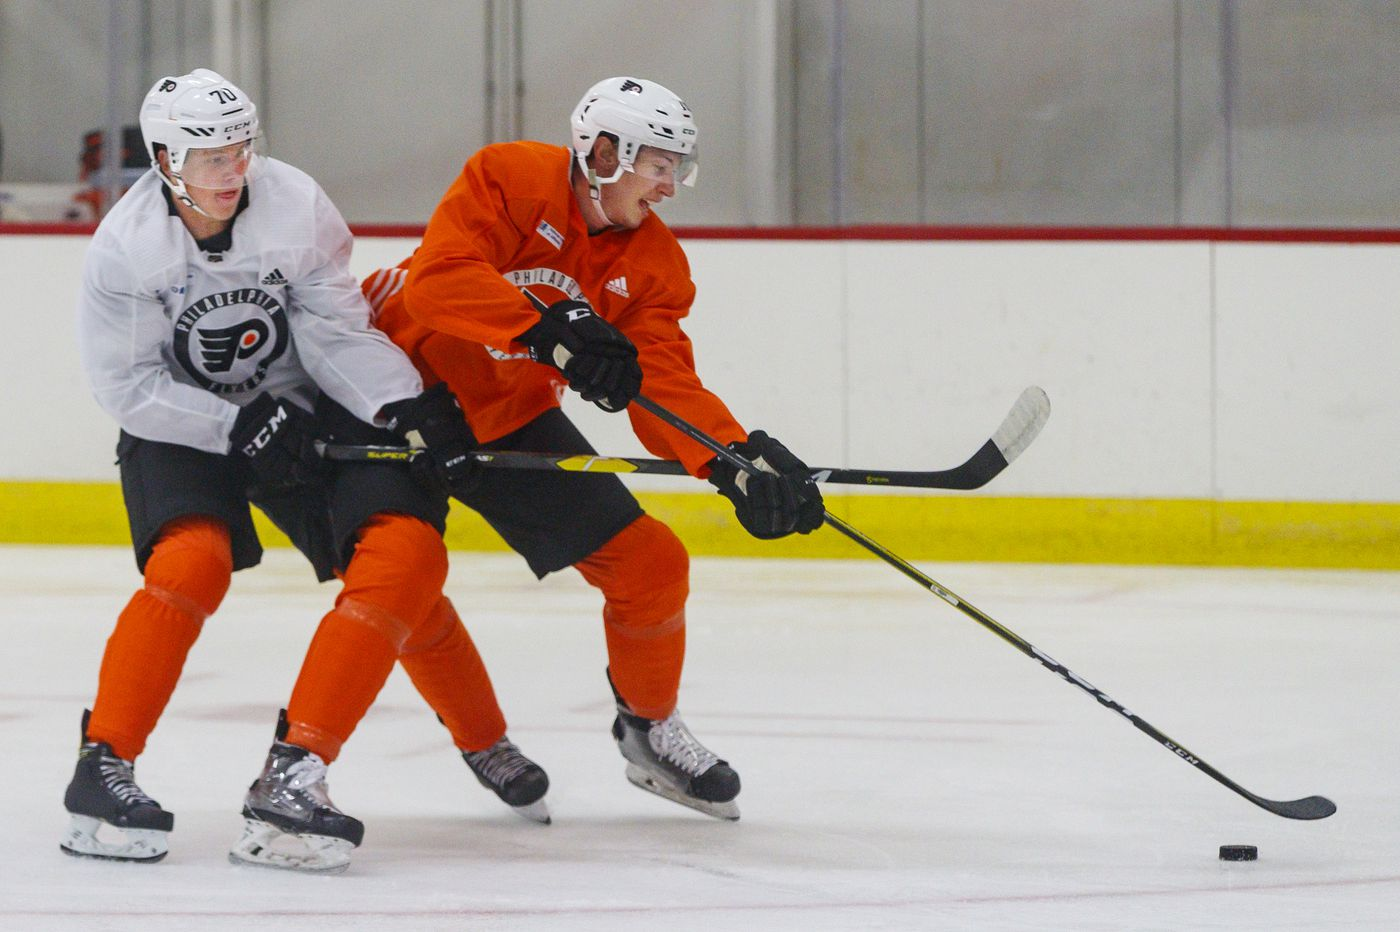 Isaac Ratcliffe showing why Flyers moved up in the draft last year